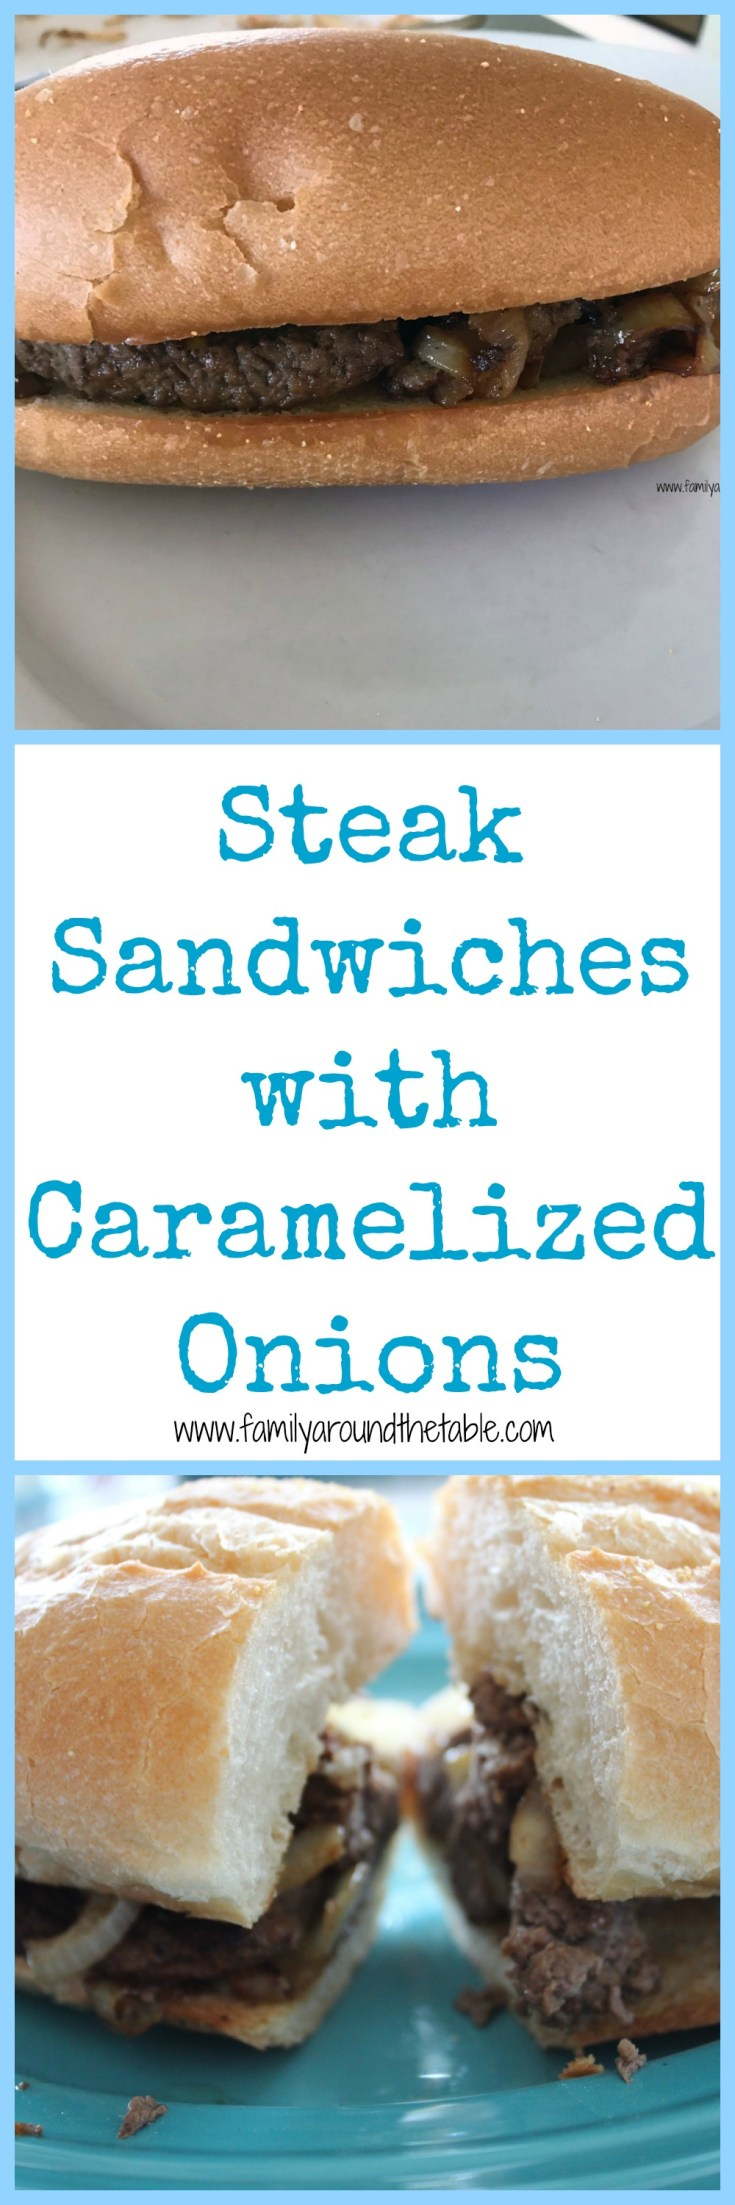 Steak sandwiches with caramelized opinions will make anyone happy.